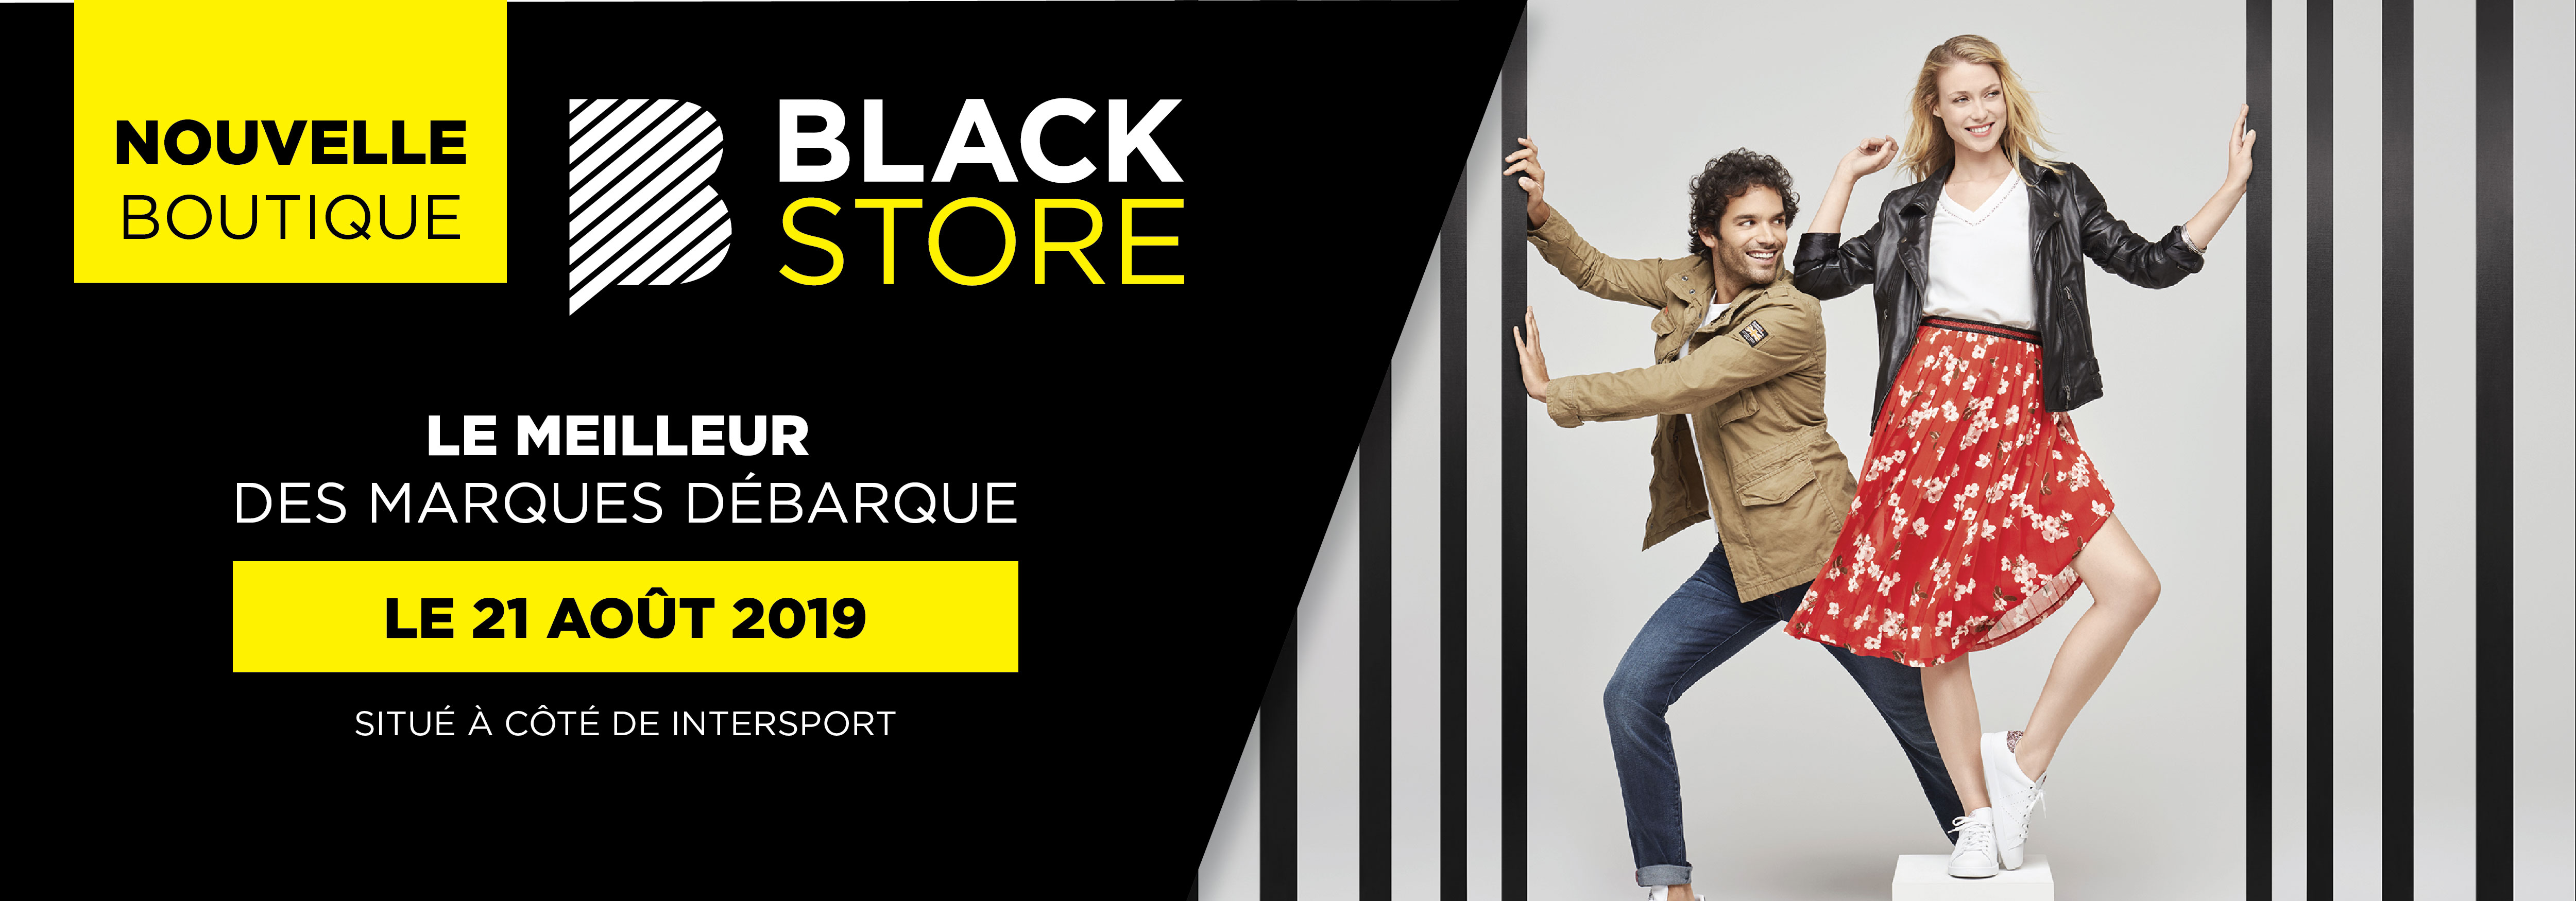 BlackStore_ouverture_www-home